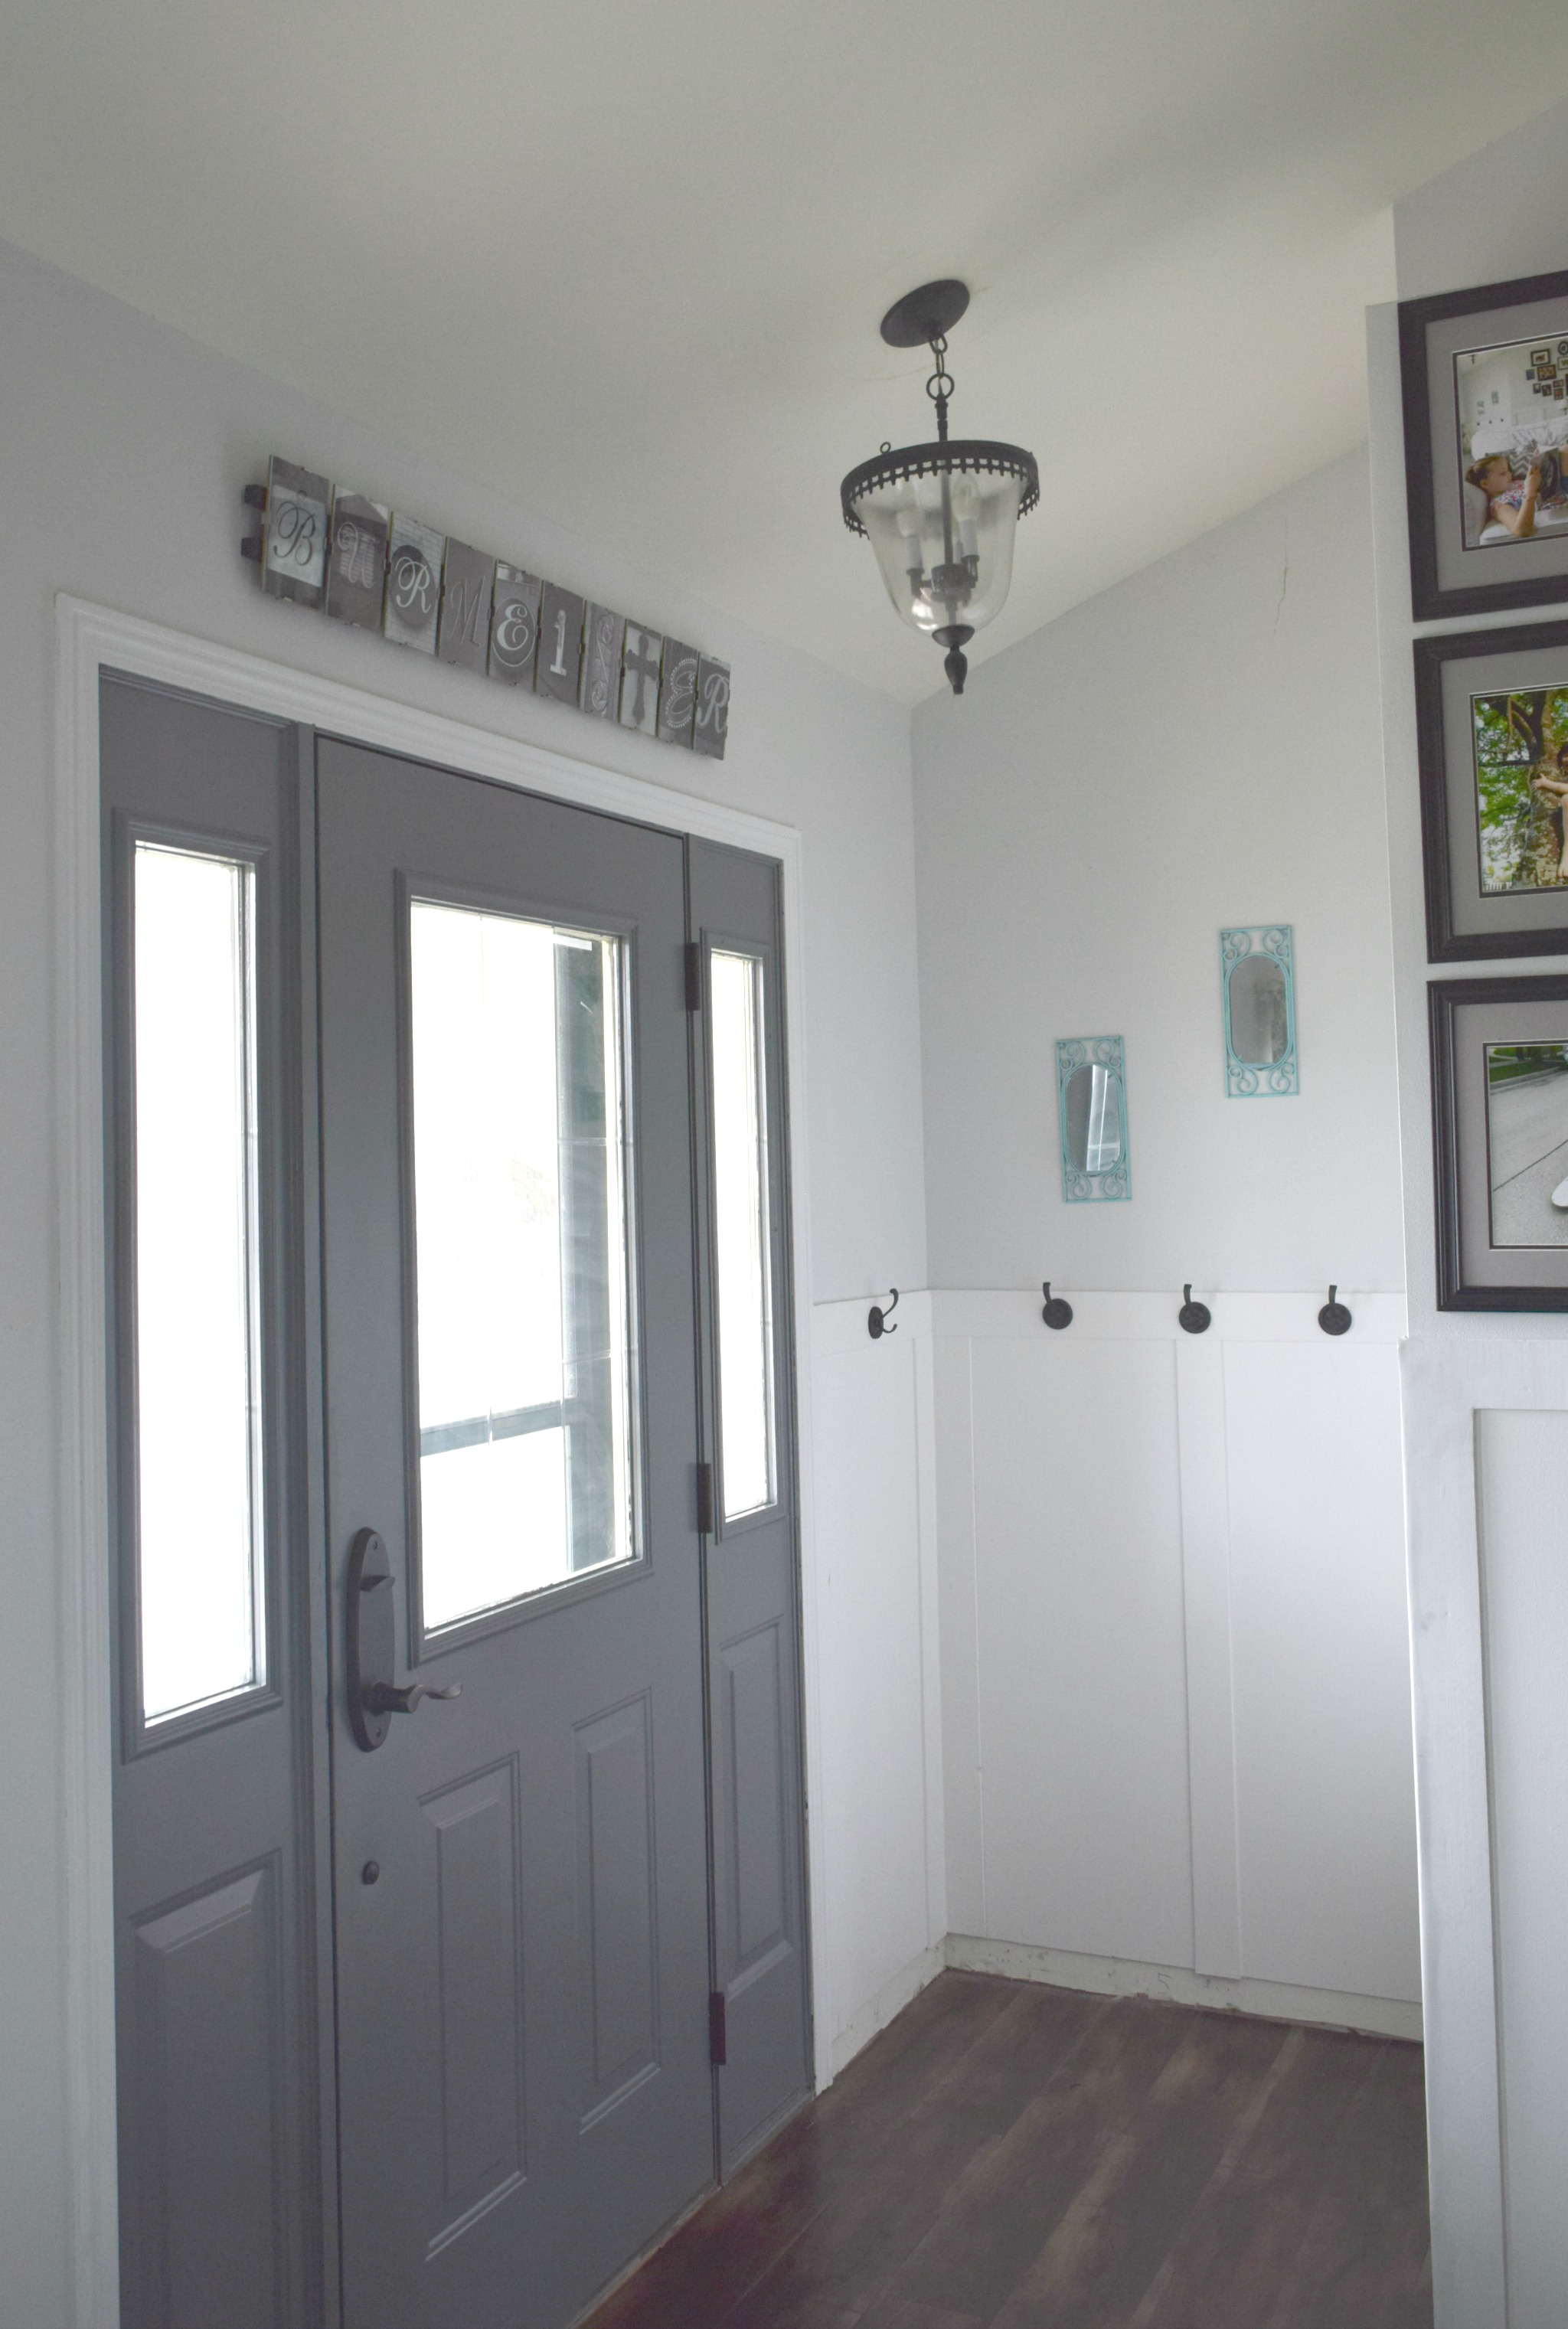 Home Without A Foyer : How to create a designated entryway in your home our